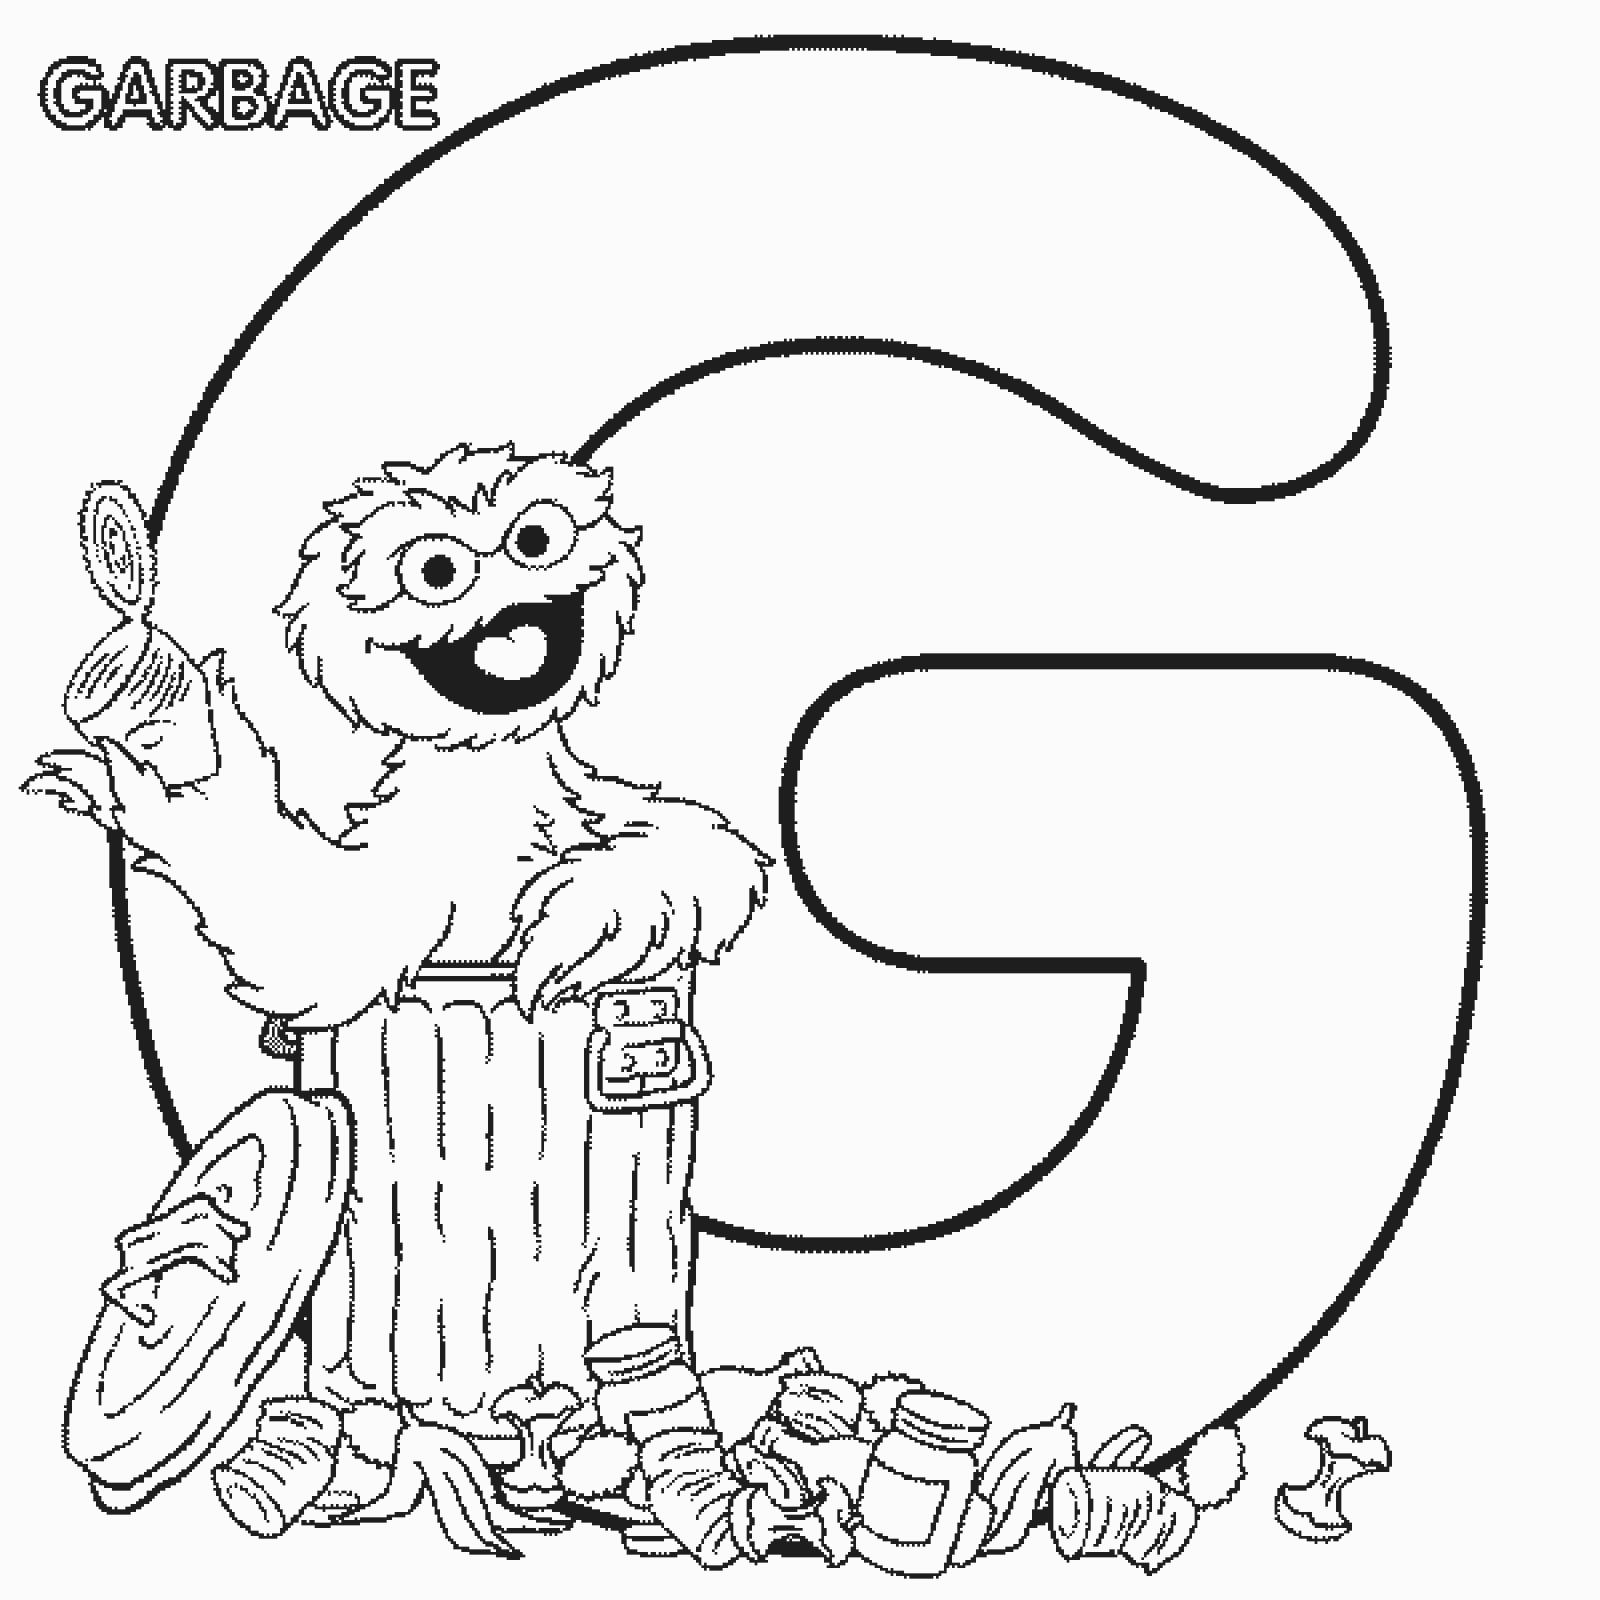 Adult Cute Sesame Street Alphabet Coloring Pages Gallery Images top sesame street coloring pages alphabet az images